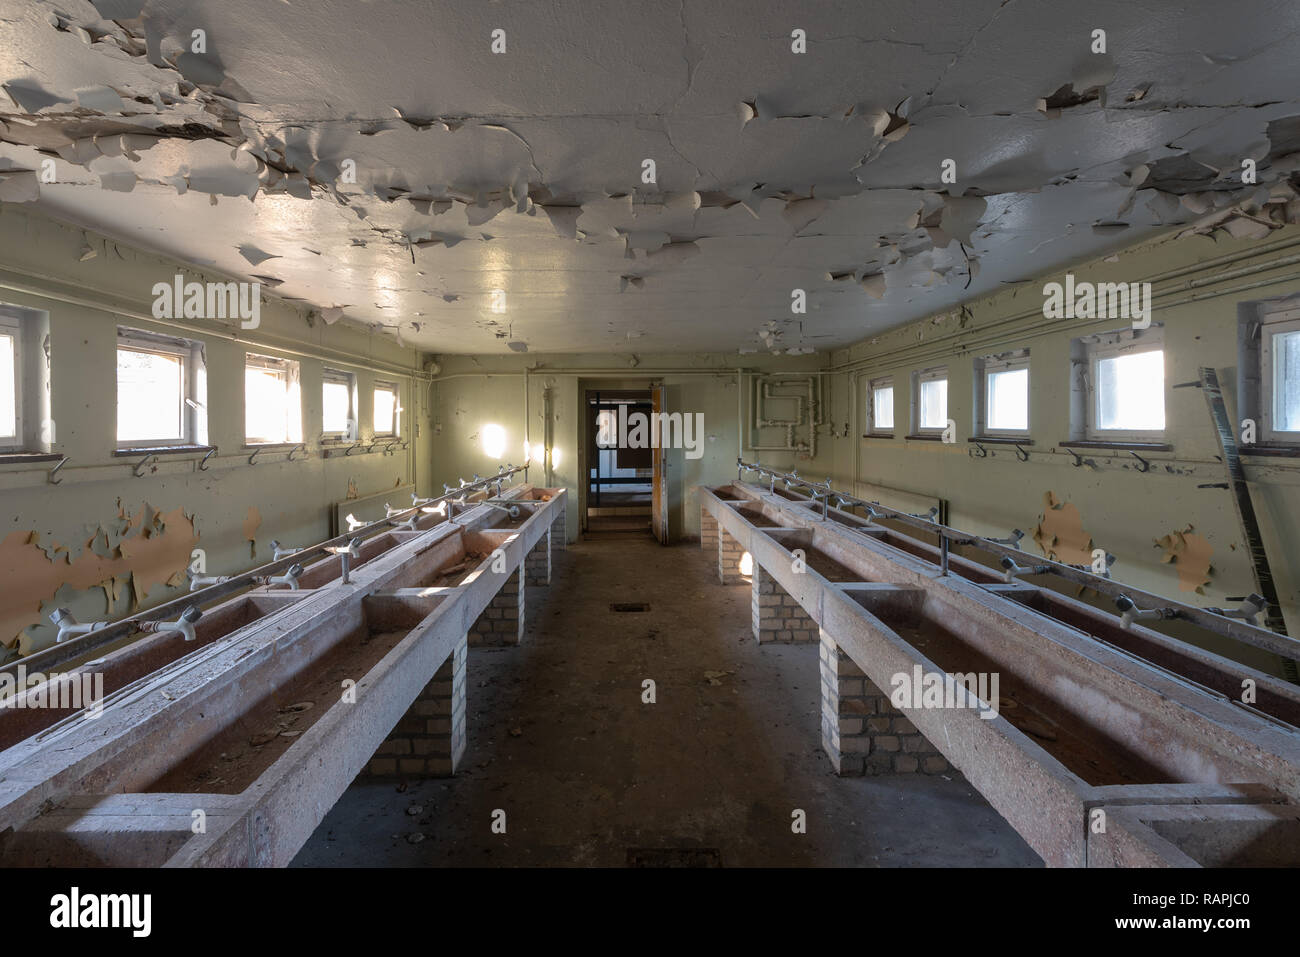 Prerow, Germany - December 30, 2018: View into the washroom of the former training centre of the Gesellschaft für Sport und Technik (GST) of the GDR i - Stock Image